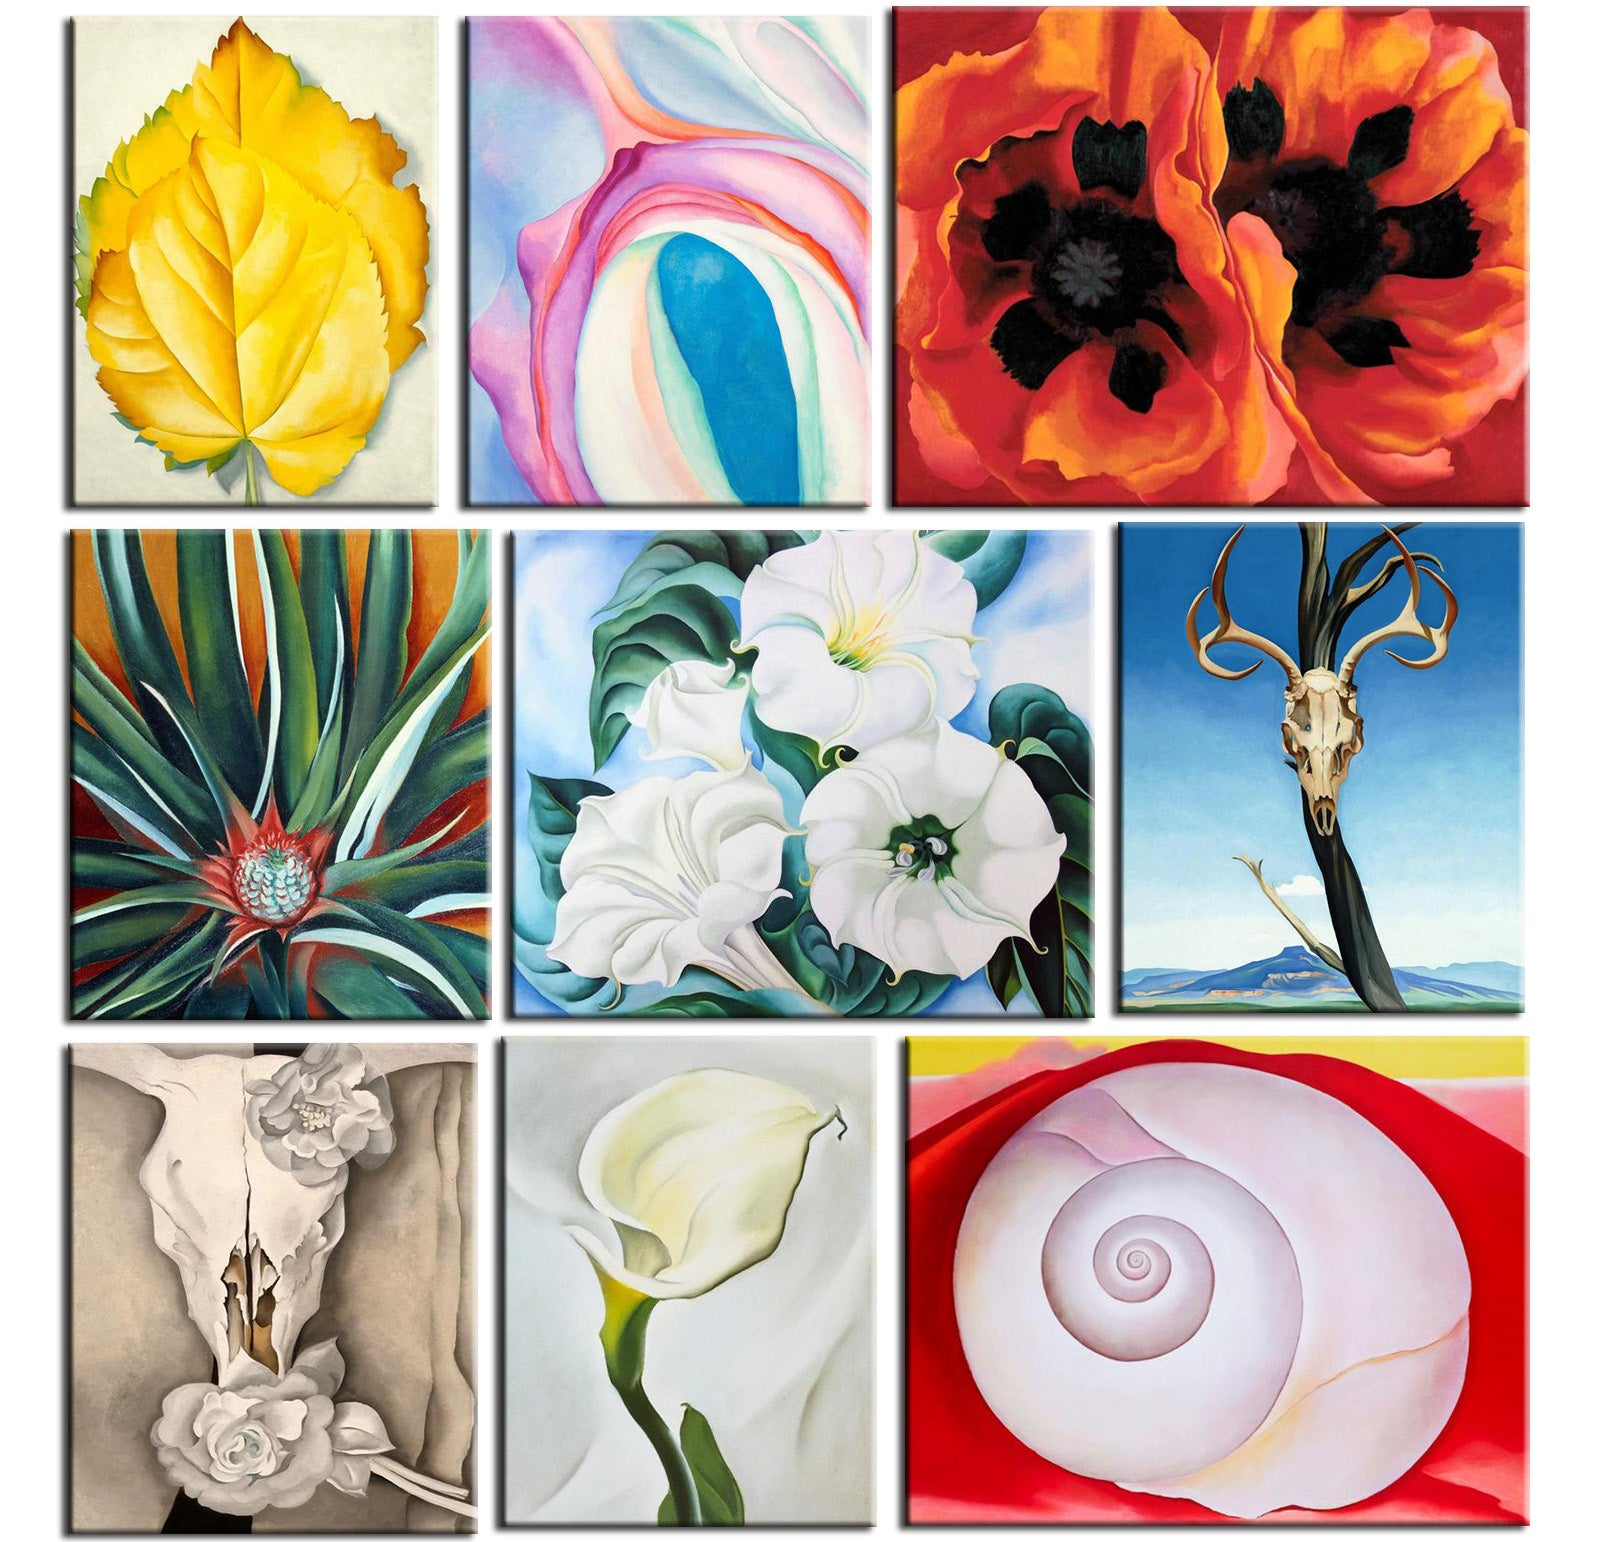 Georgia O'Keeffe Paintings | Buy Posters, Frames, Canvas, Digital Art & Large Size Prints Of The Famous Old Master's Artworks